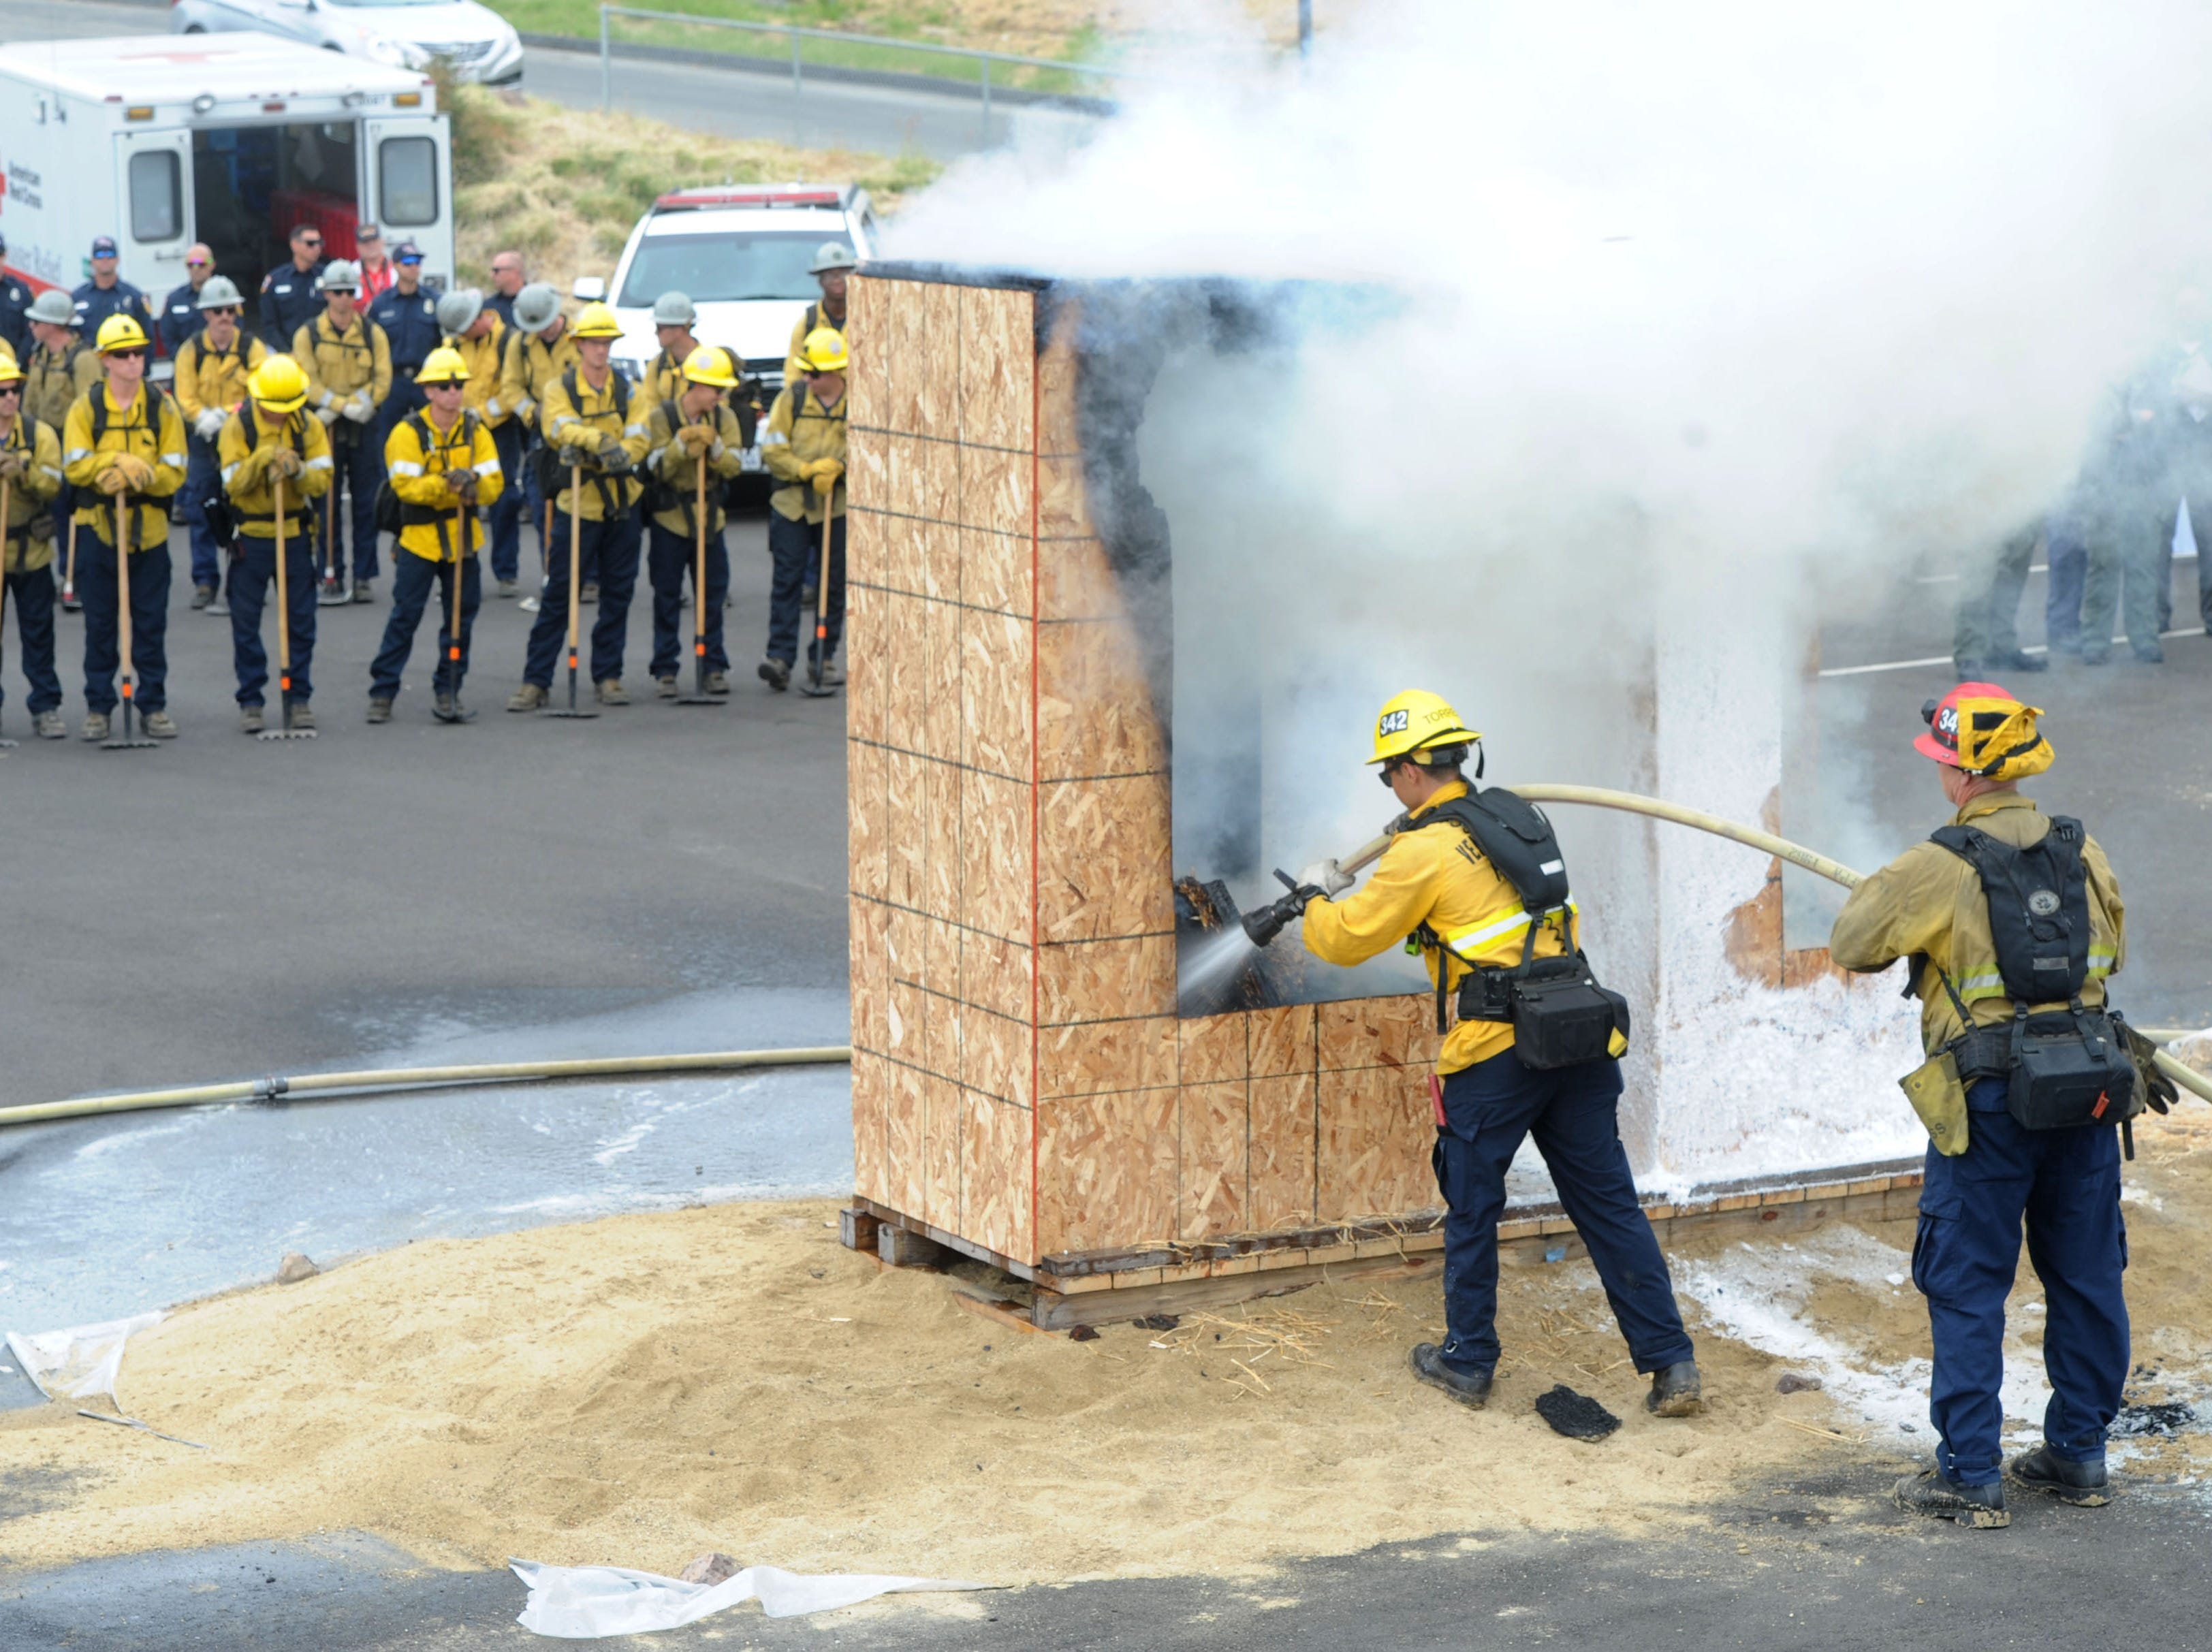 """Firefighters douse flames after a fire demonstration Wednesday at the Southern California """"Ready for Wildfires"""" event at the Reagan Library in Simi Valley."""